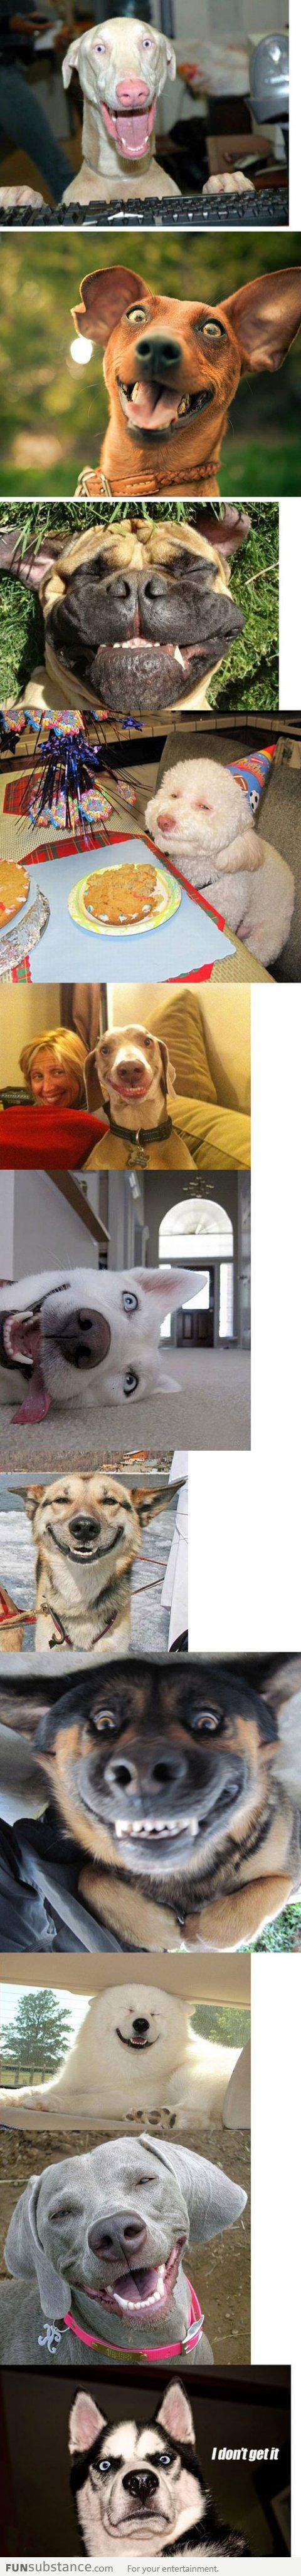 funny smile dogs photos see